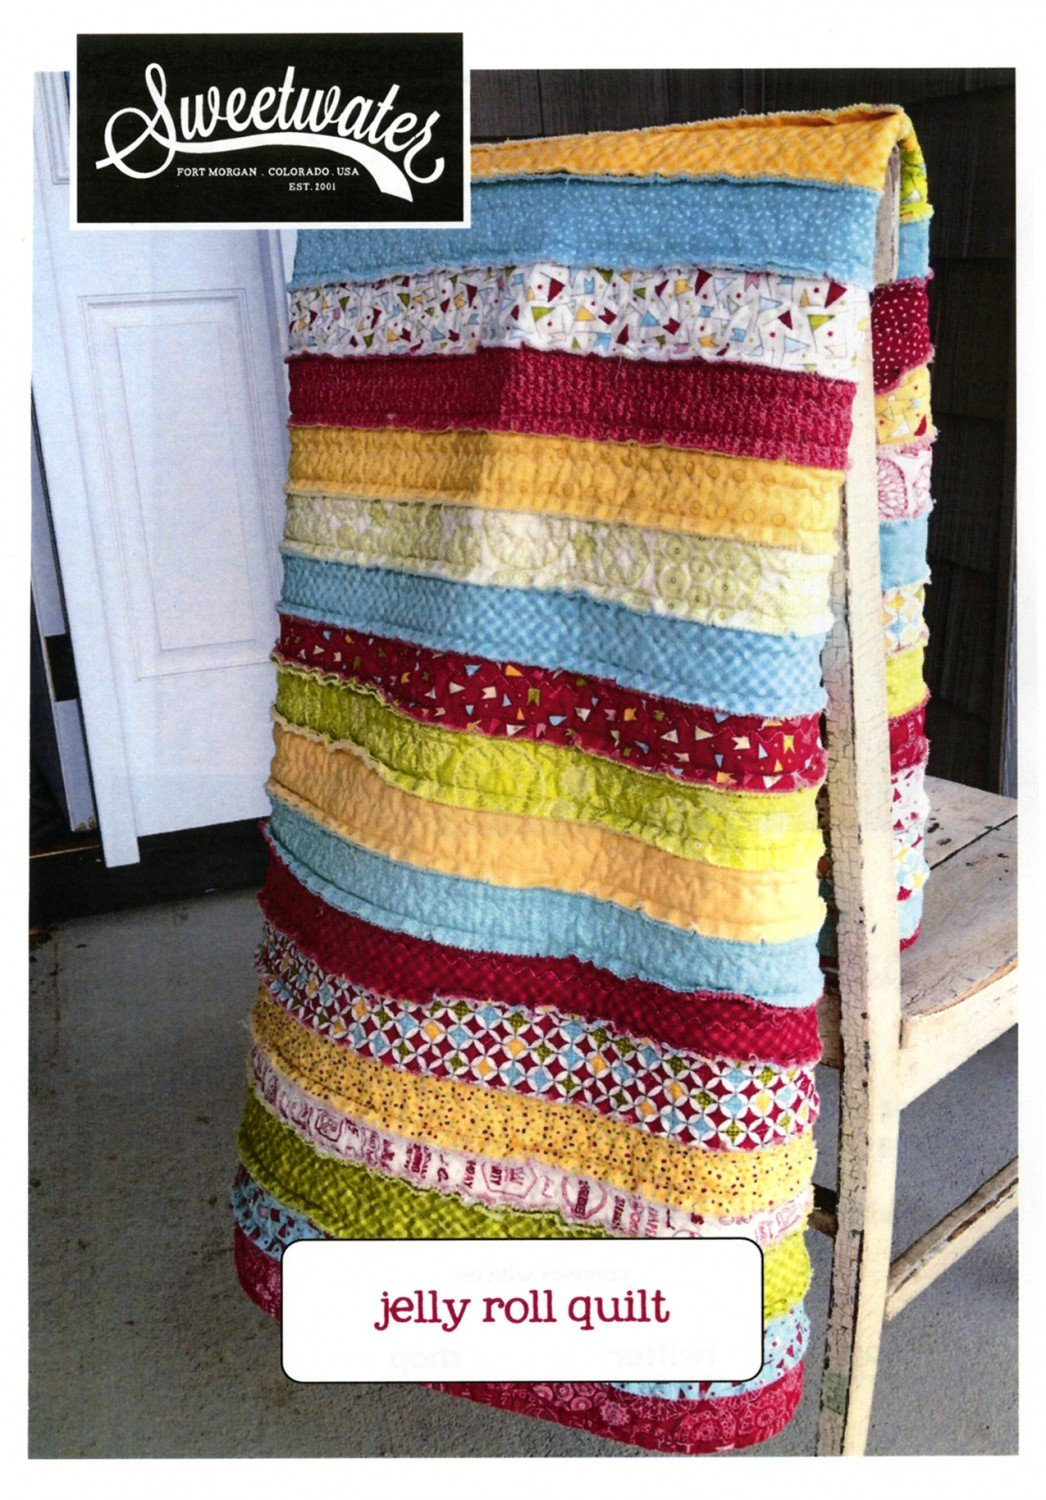 PATTERN JELLY ROLL QUILT